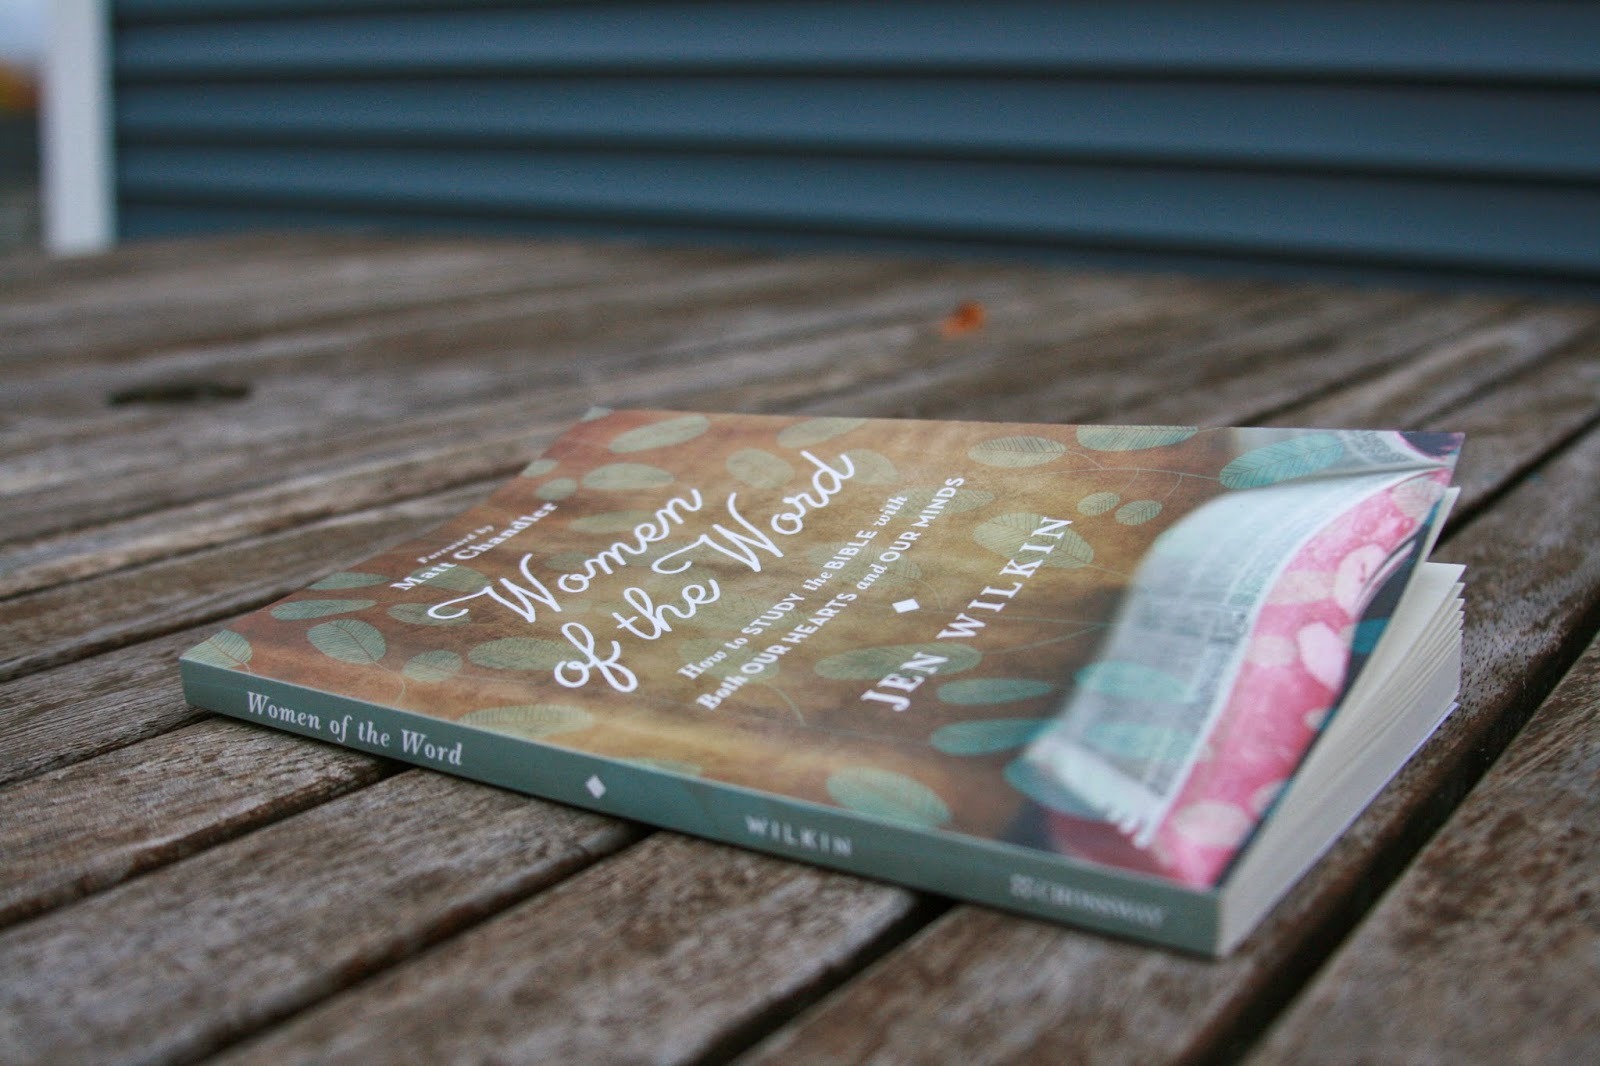 Jen Wilkin, Review, Women of the Word, Book Review